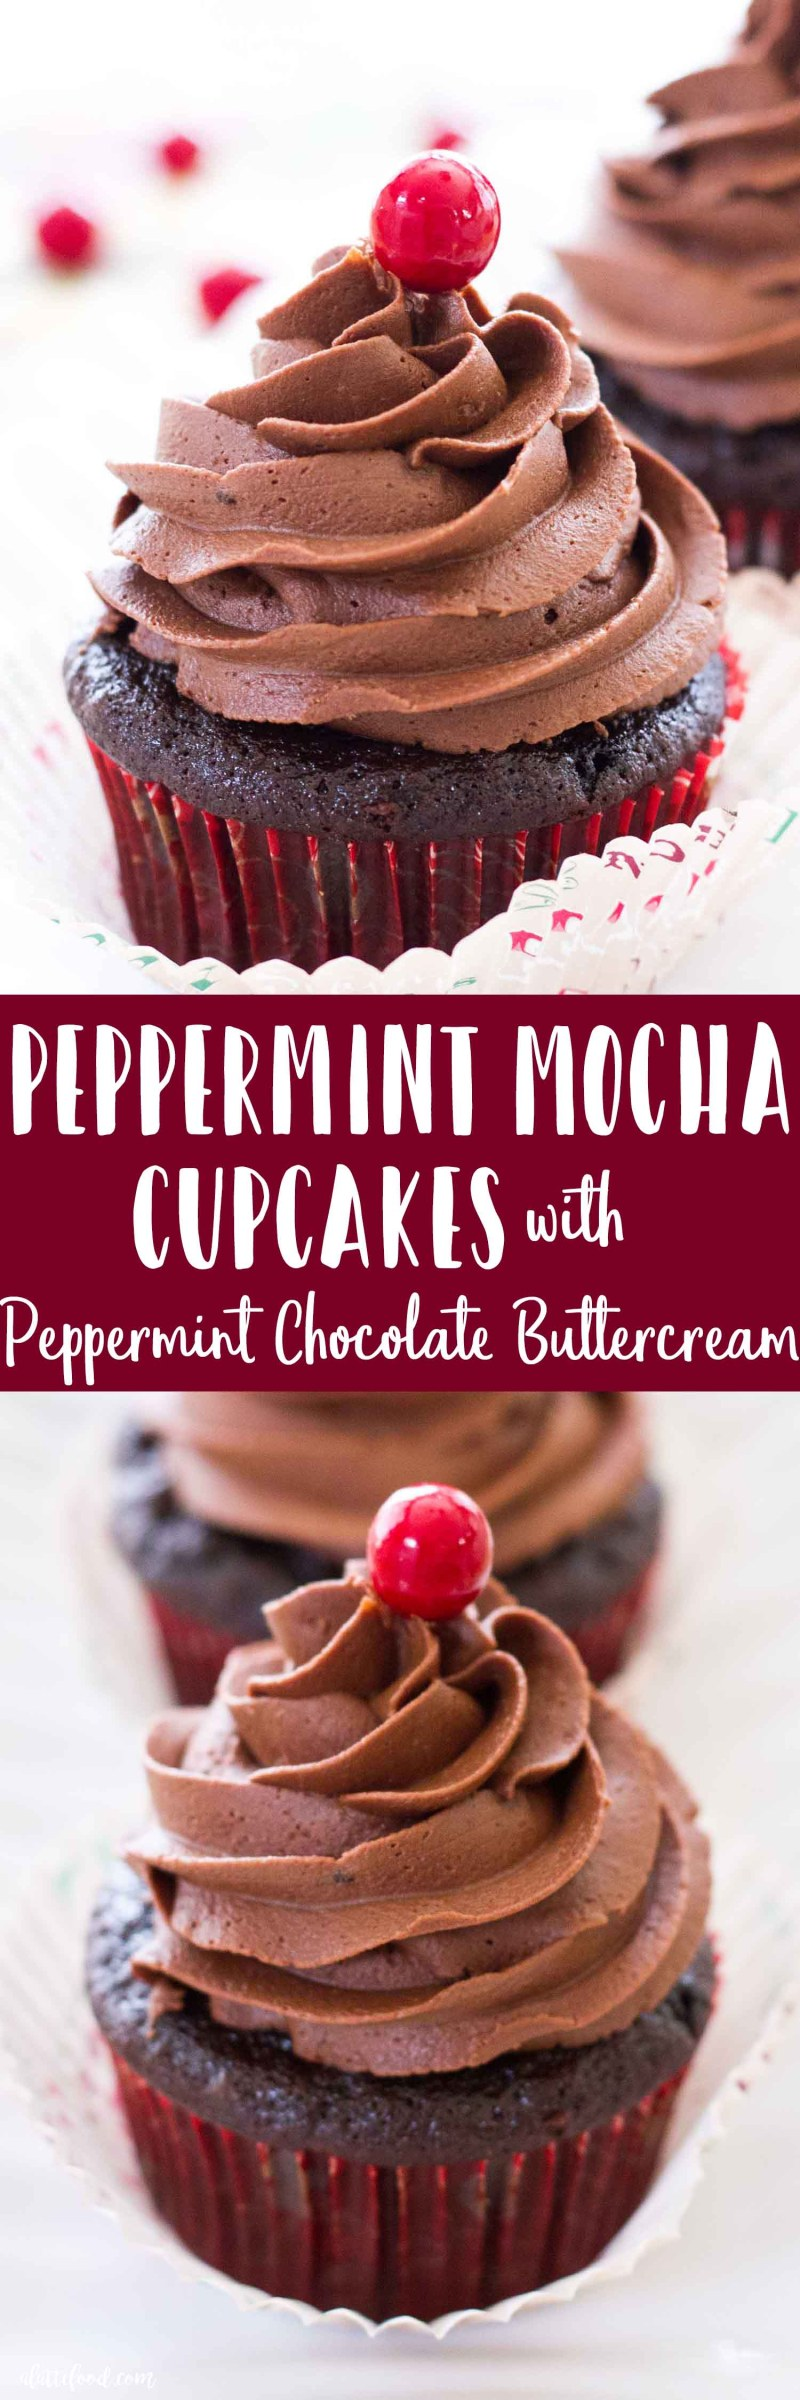 Peppermint Mocha Cupcakes -- These rich homemade chocolate cupcakes are filled with all of the flavors of a peppermint mocha latte! These peppermint mocha cupcakes are topped with a peppermint chocolate buttercream, giving these chocolate cupcakes twice the peppermint, chocolate, and mocha flavors!